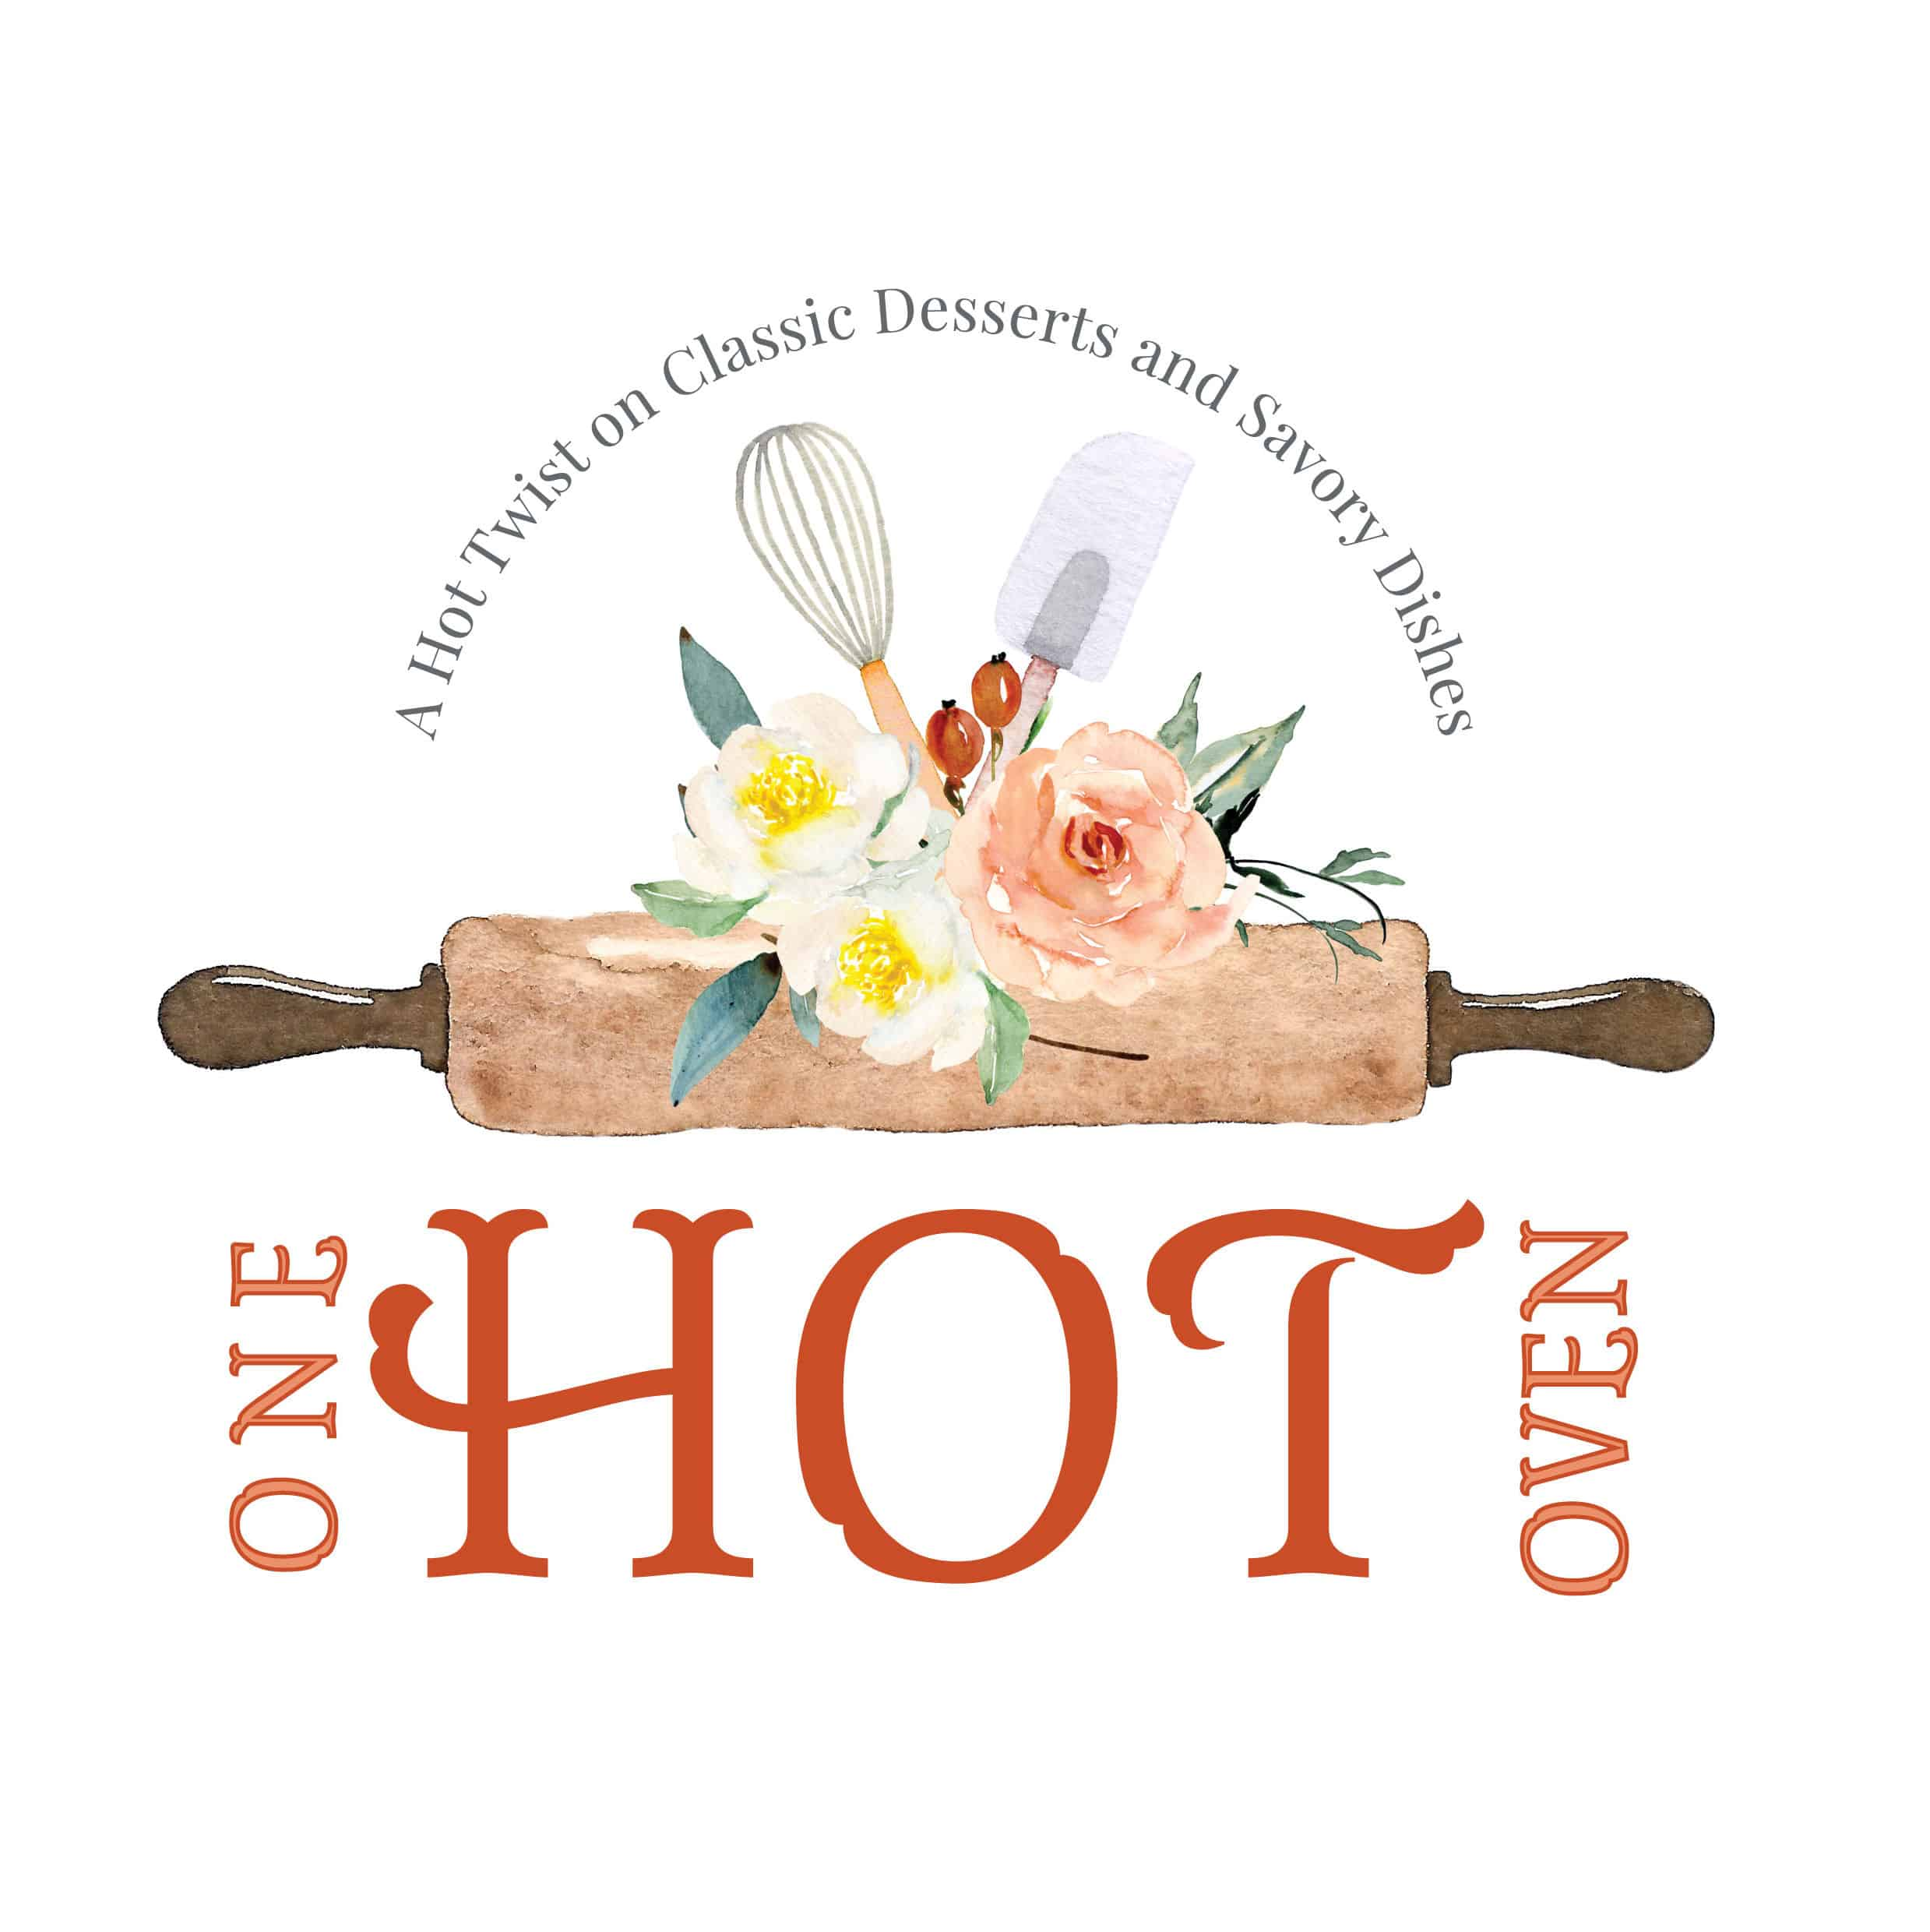 One Hot Oven logo with rolling pin.